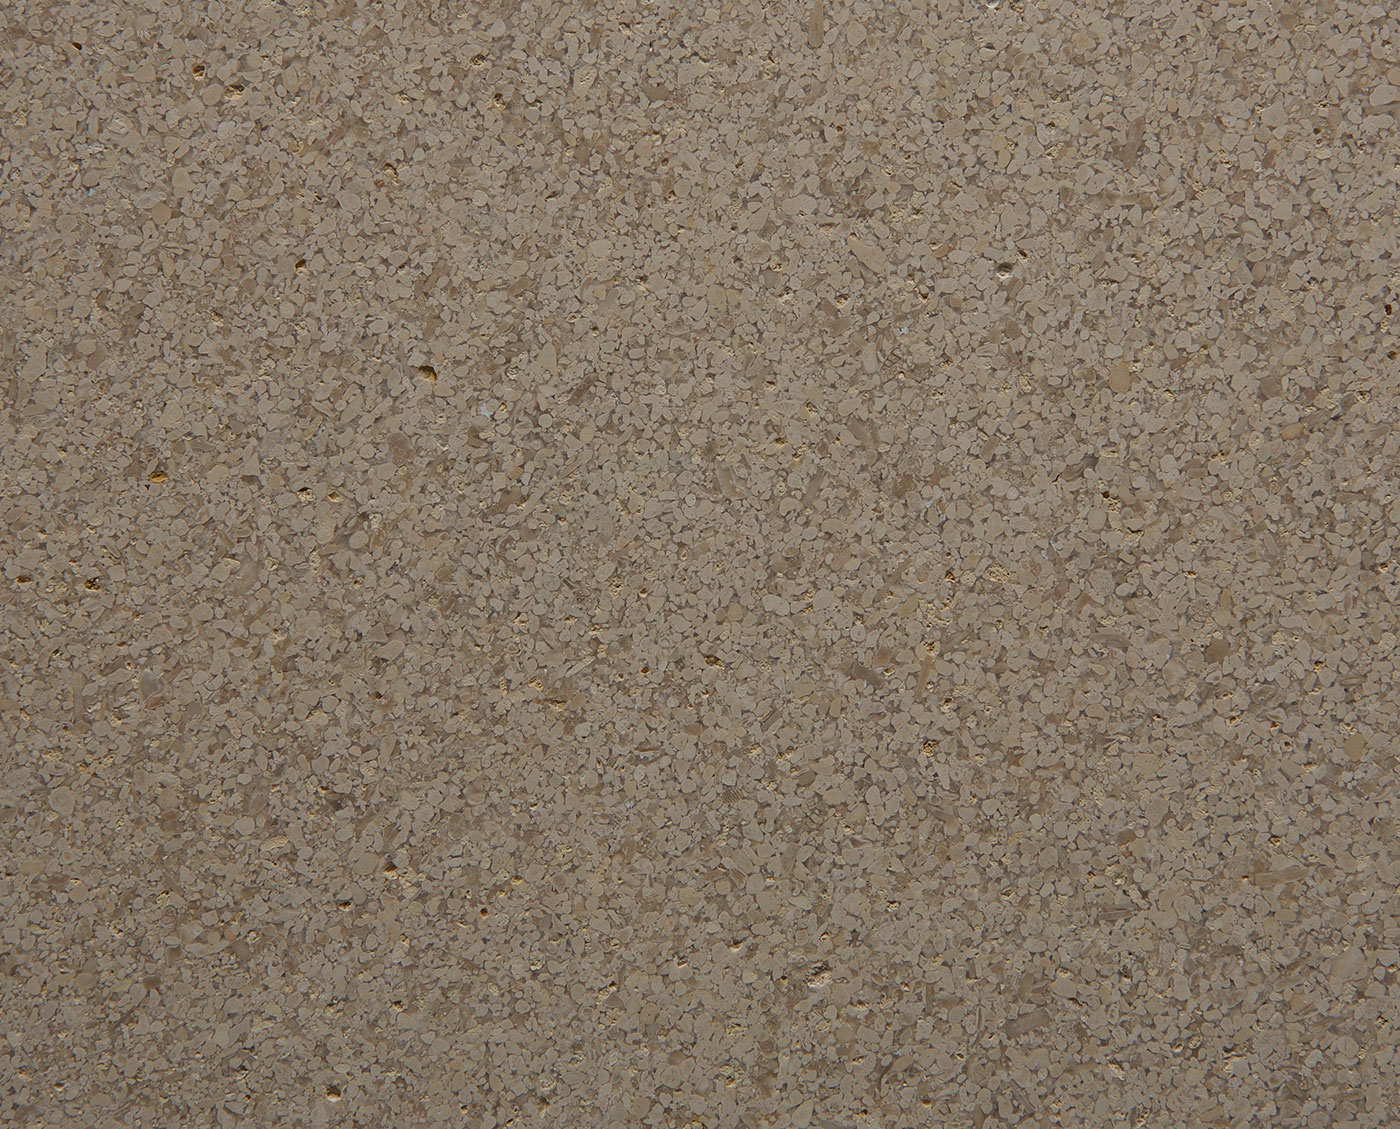 Mespiral Sand Mo's honed tiles and slabs